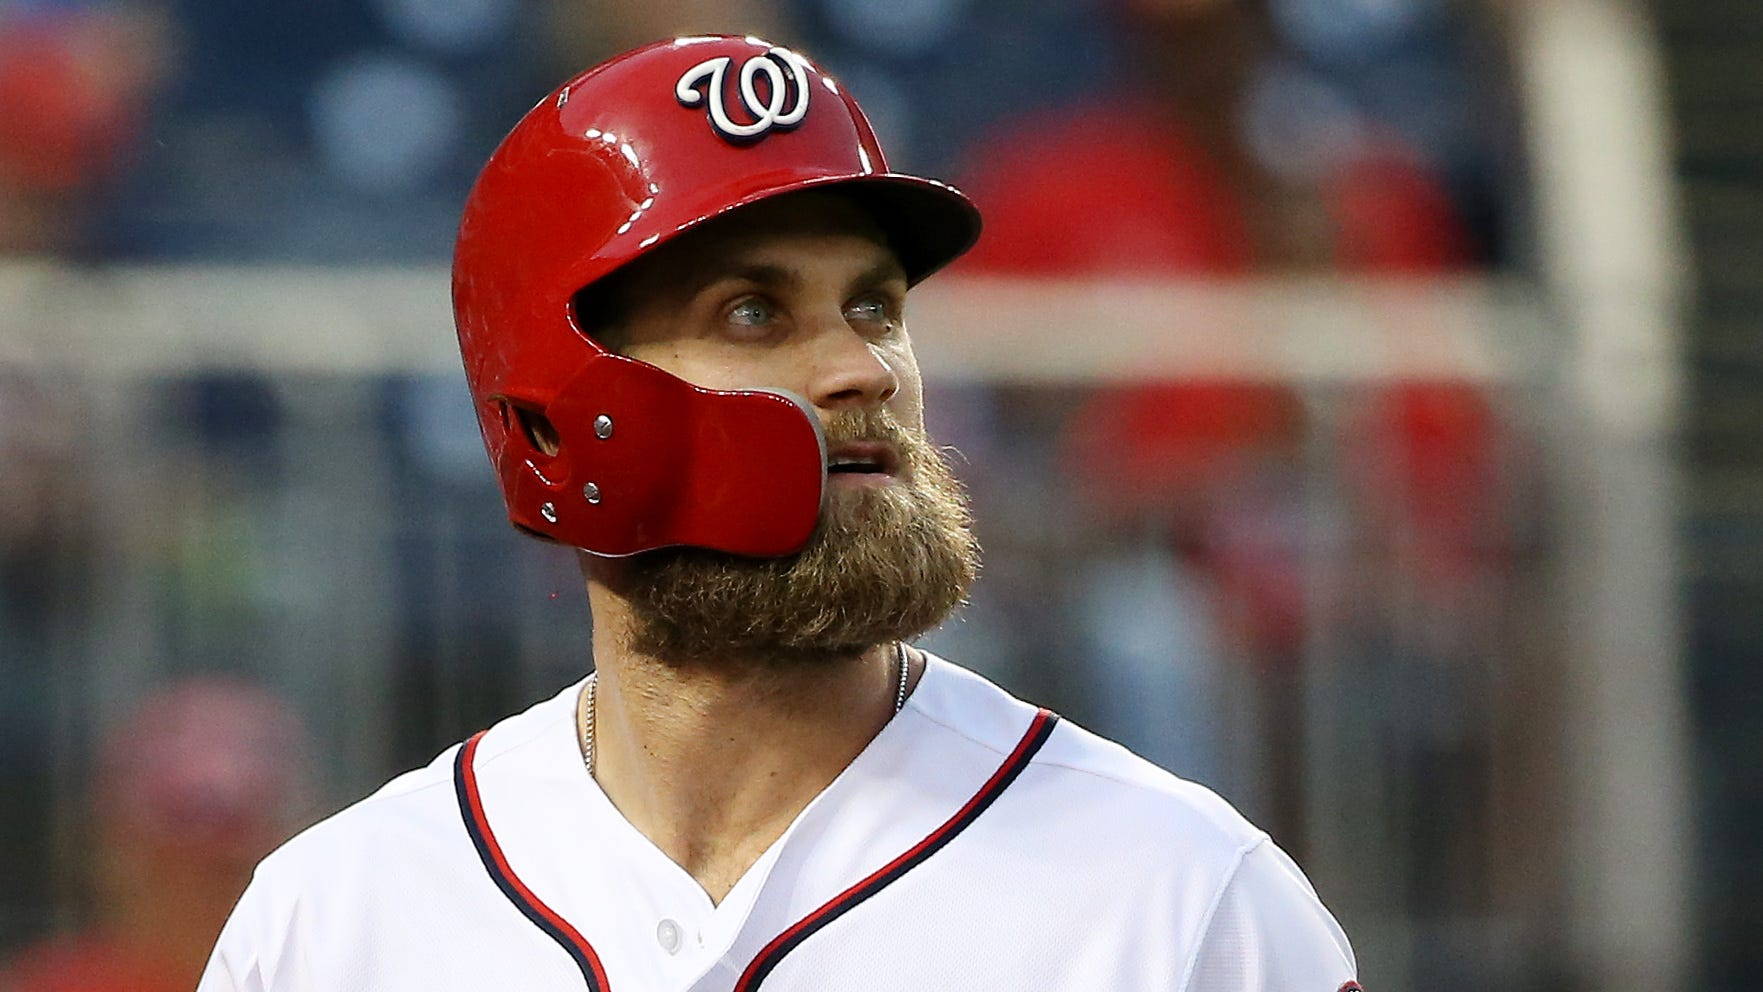 Bryce Harper signs with the Phillies. You can rely on it.